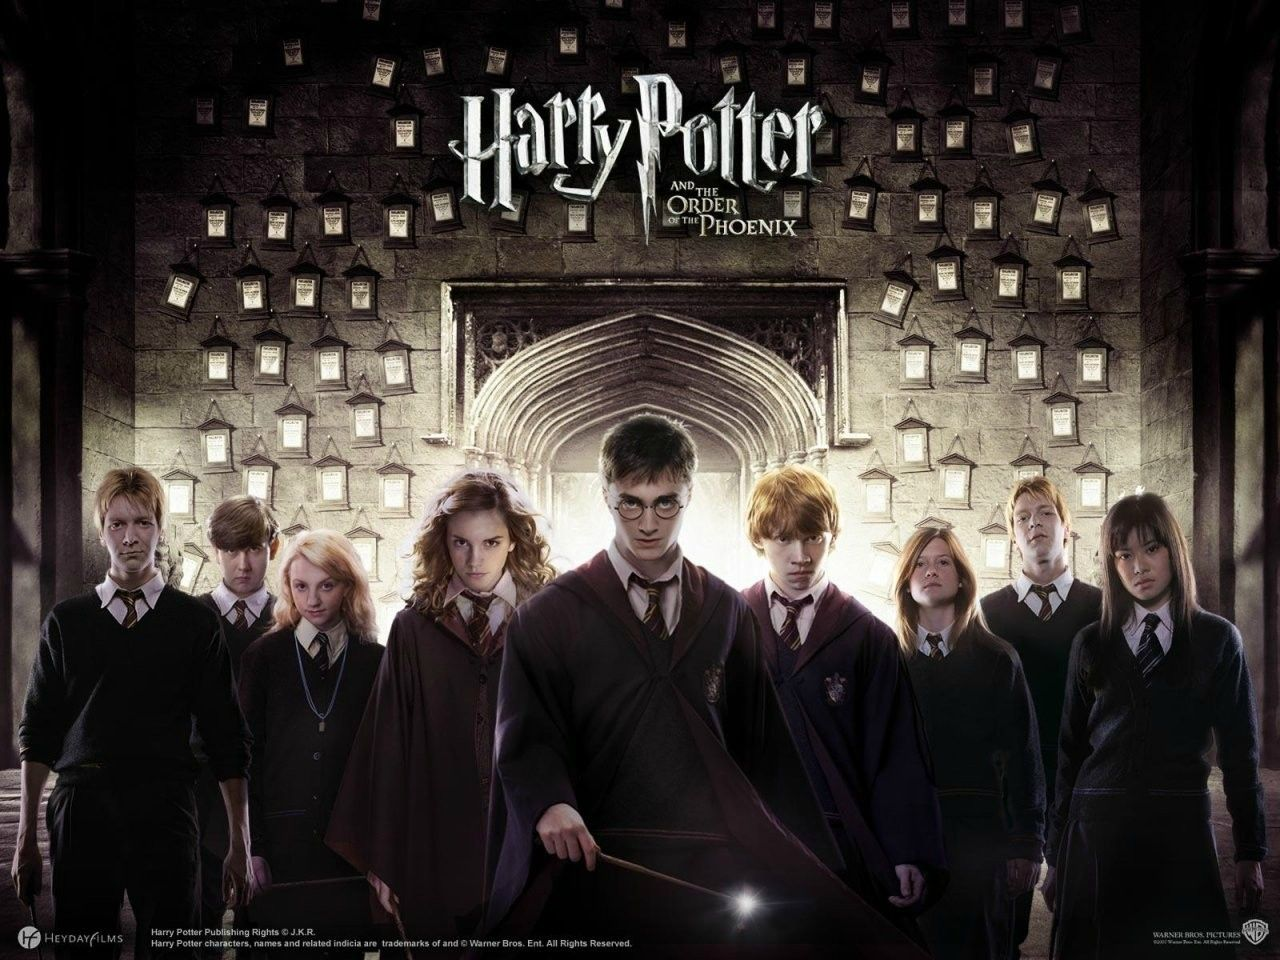 Harry potter movies images hd free wallpapers 6401136 harry potter harry potter movies images hd free wallpapers 6401136 harry potter pictures wallpapers 43 wallpapers adorable wallpapers voltagebd Image collections